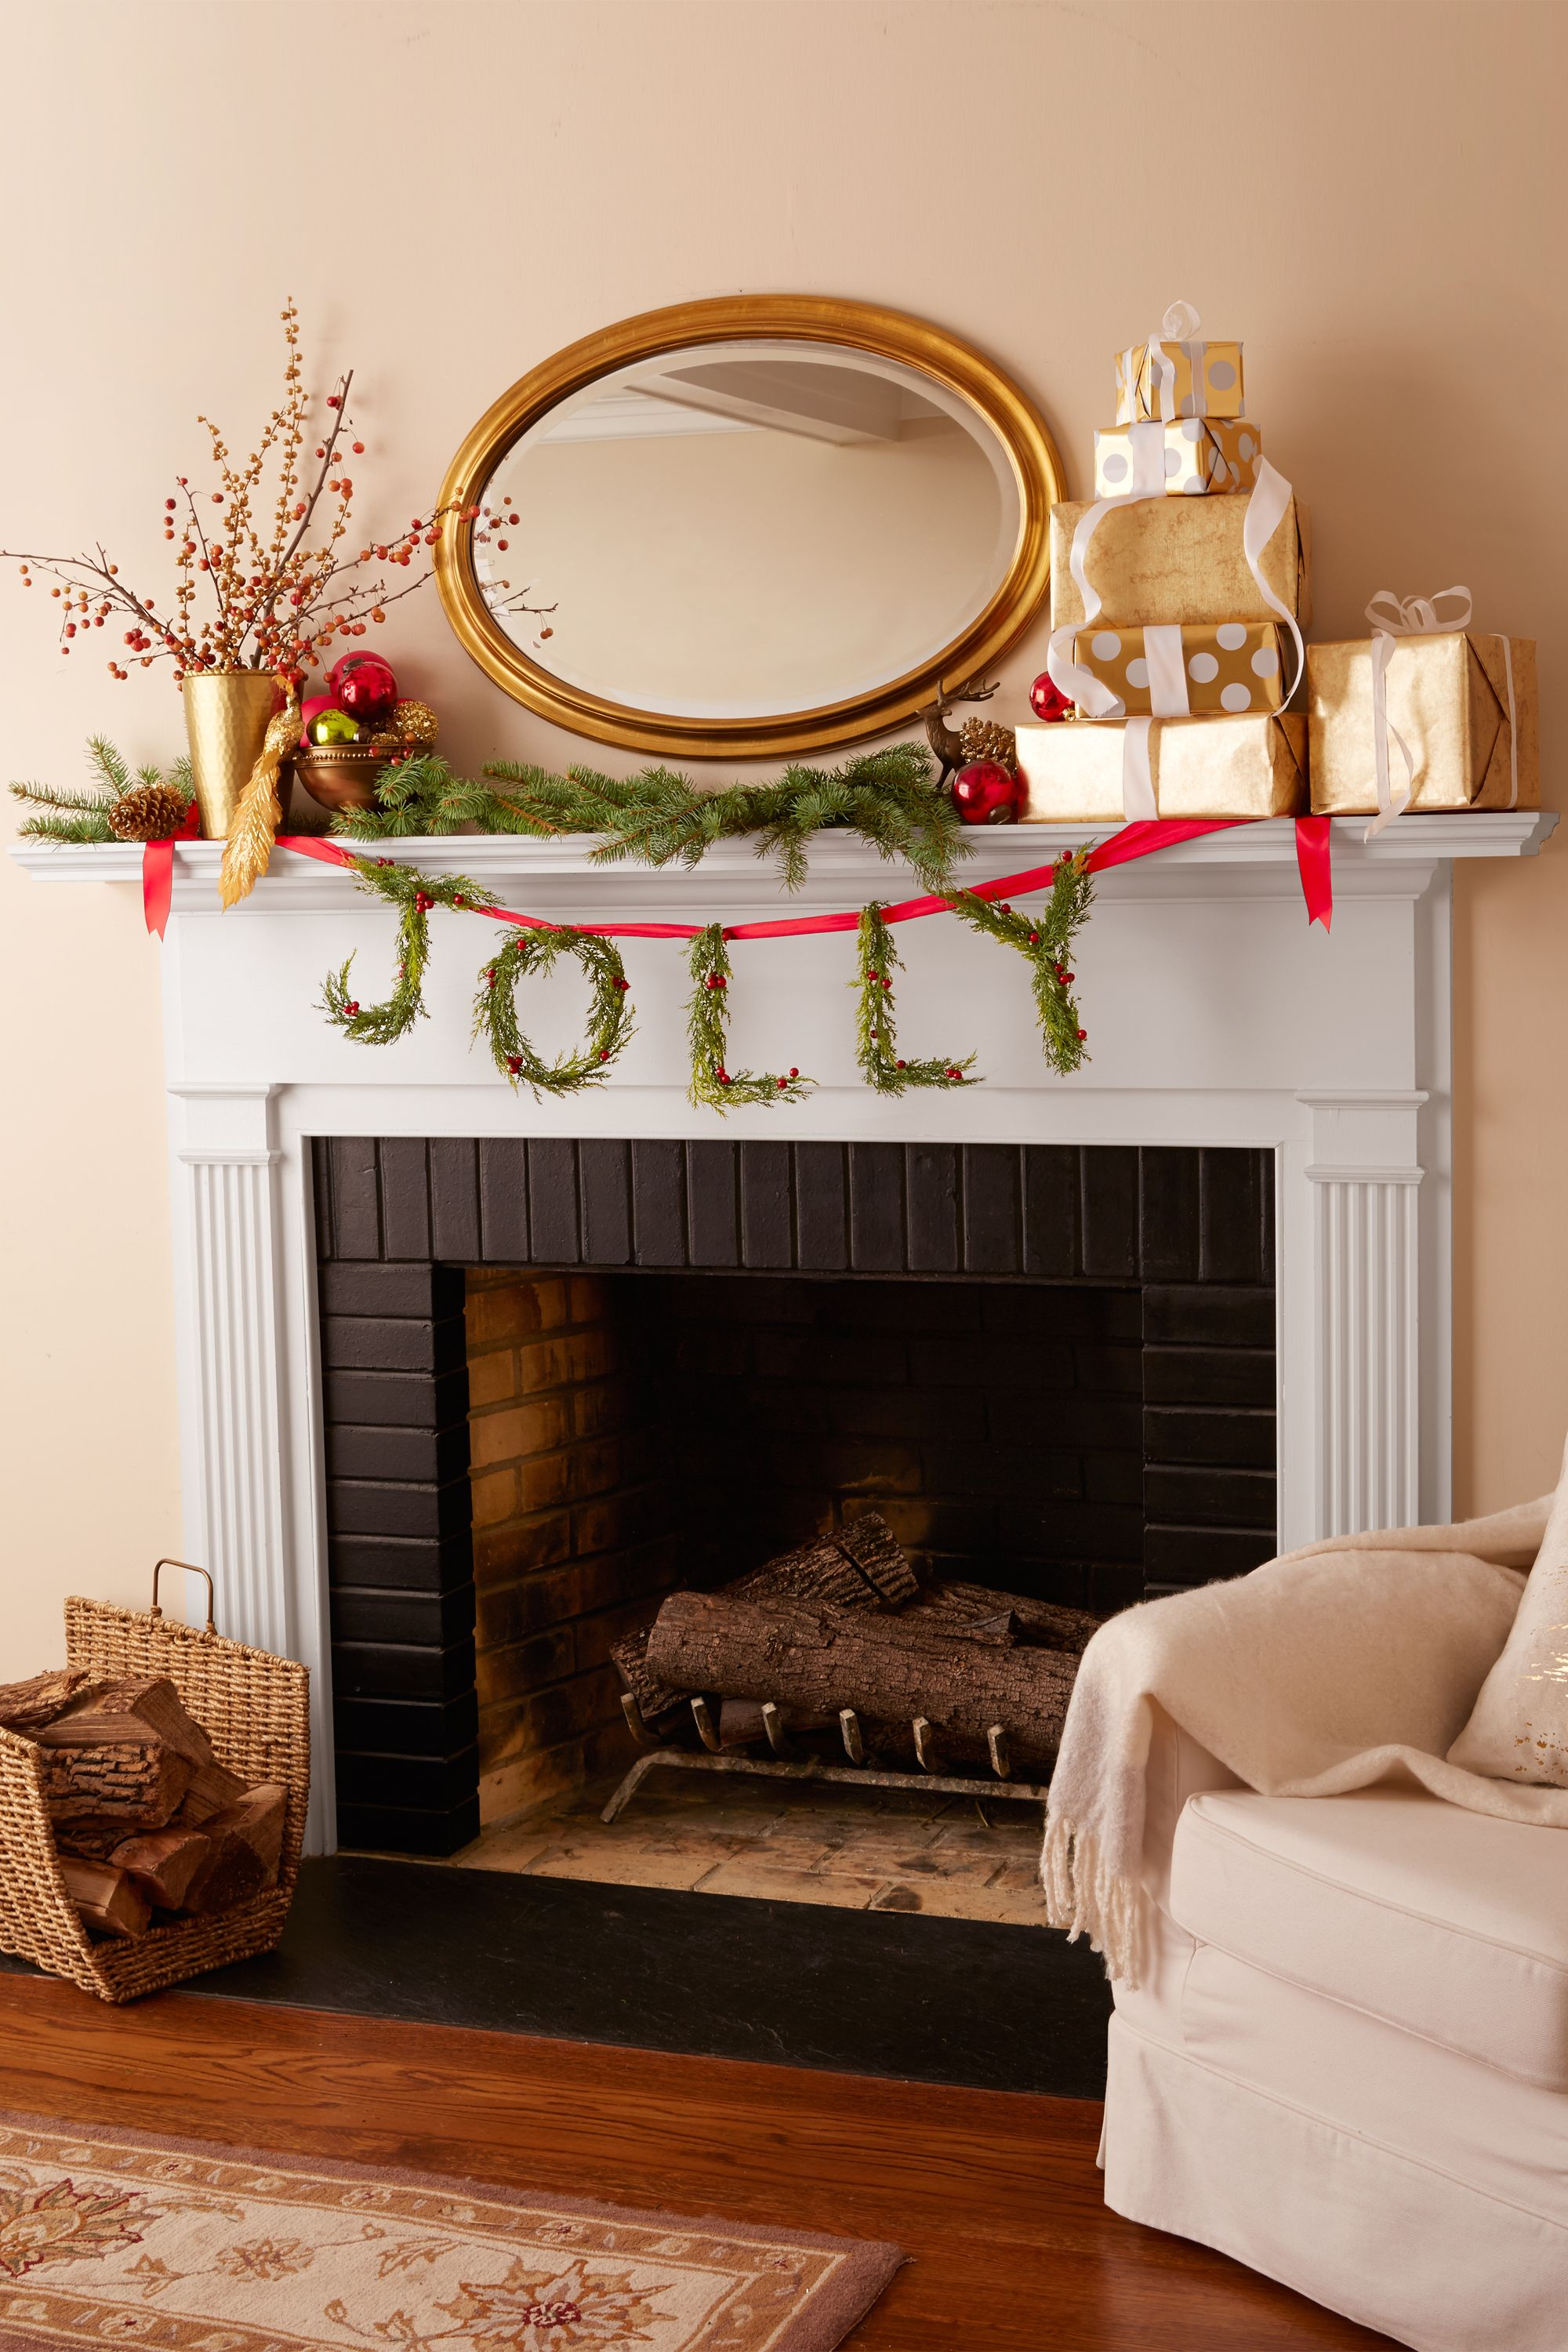 47 easy diy christmas decorations homemade ideas for holiday 47 easy diy christmas decorations homemade ideas for holiday decorating solutioingenieria Gallery